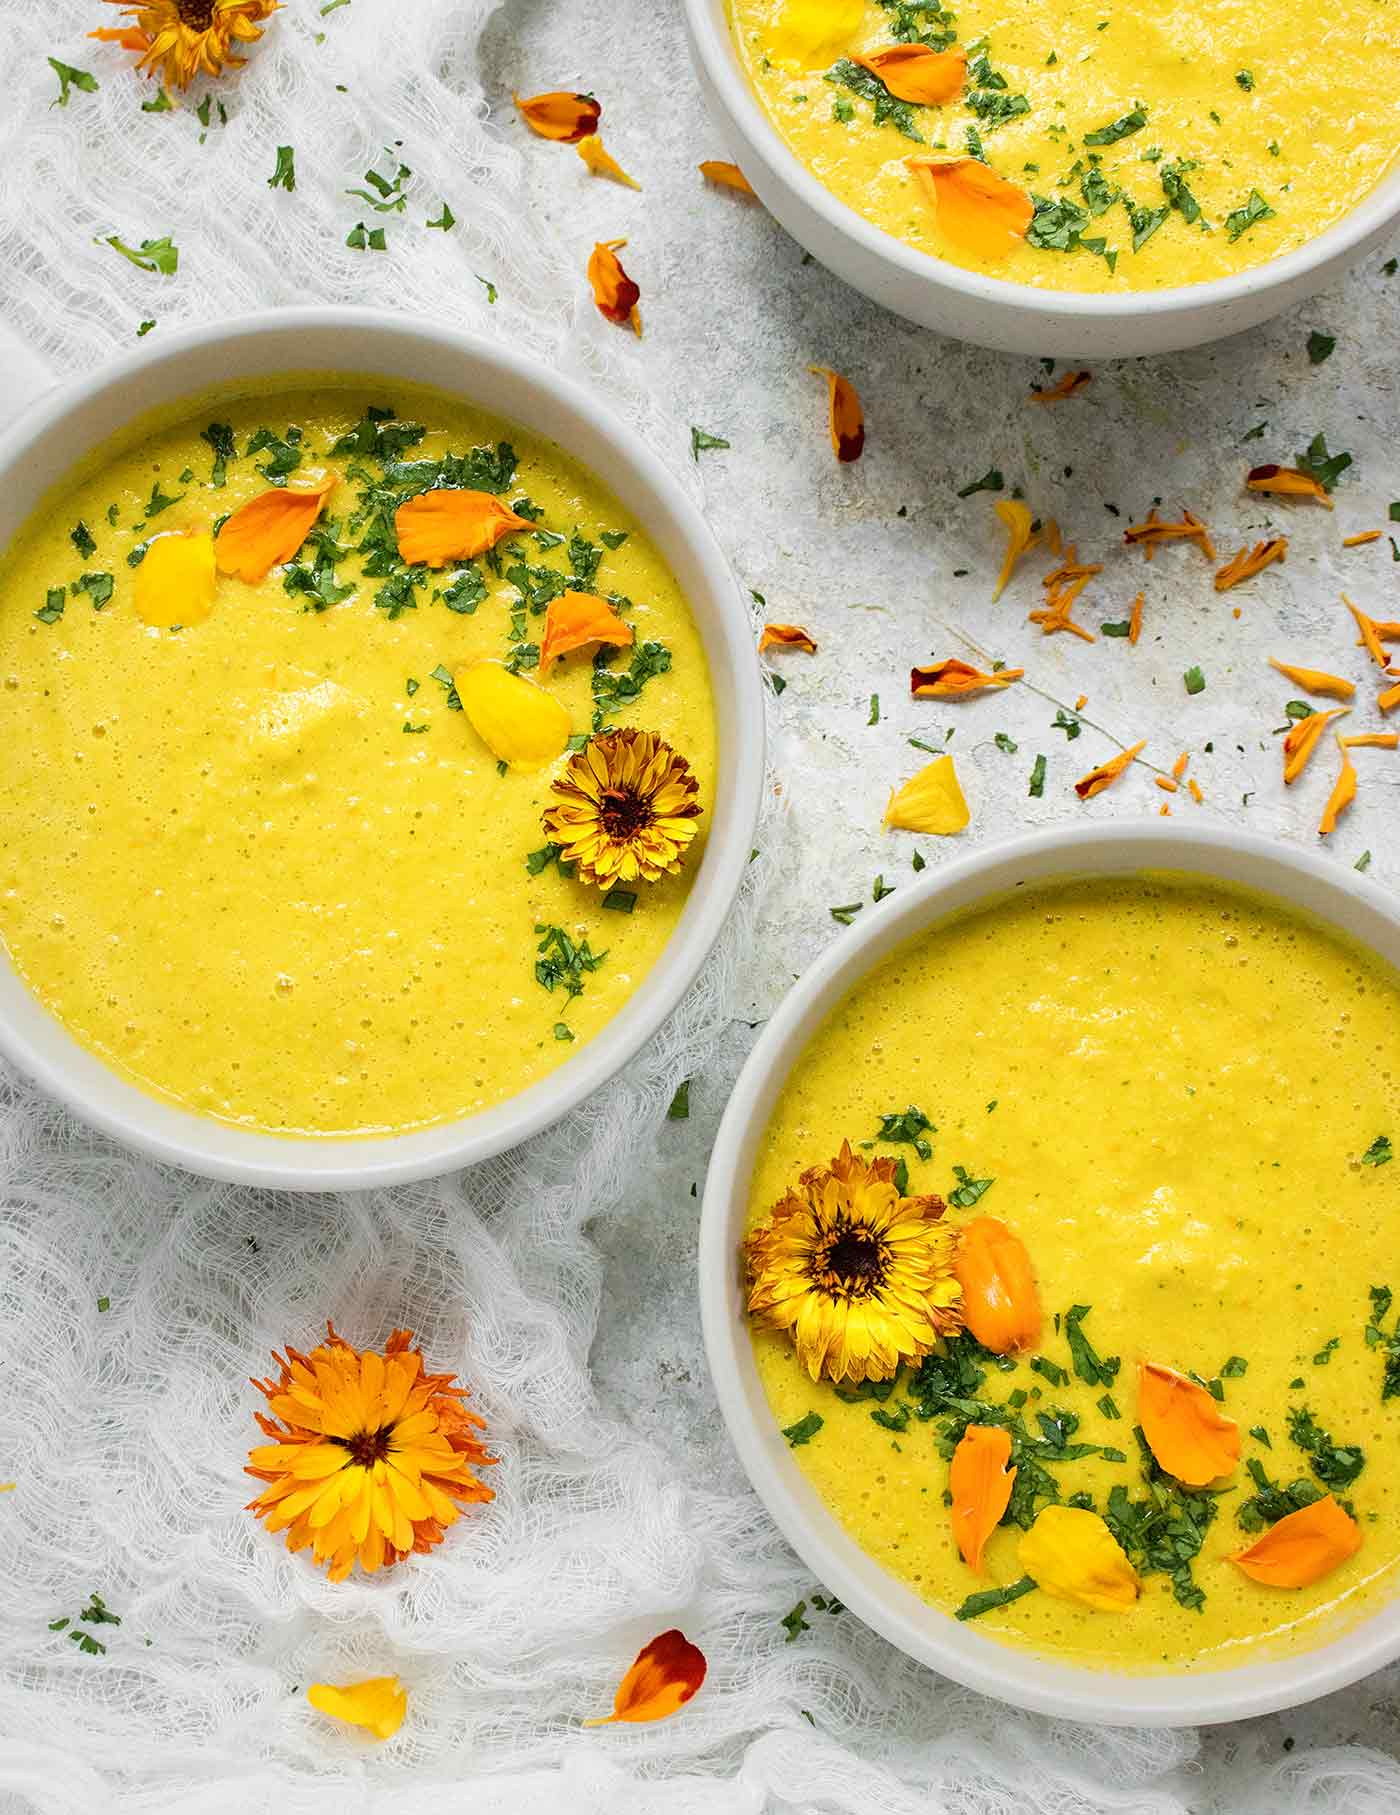 Close-up of three bowls of yellow gazpacho with edible flowers